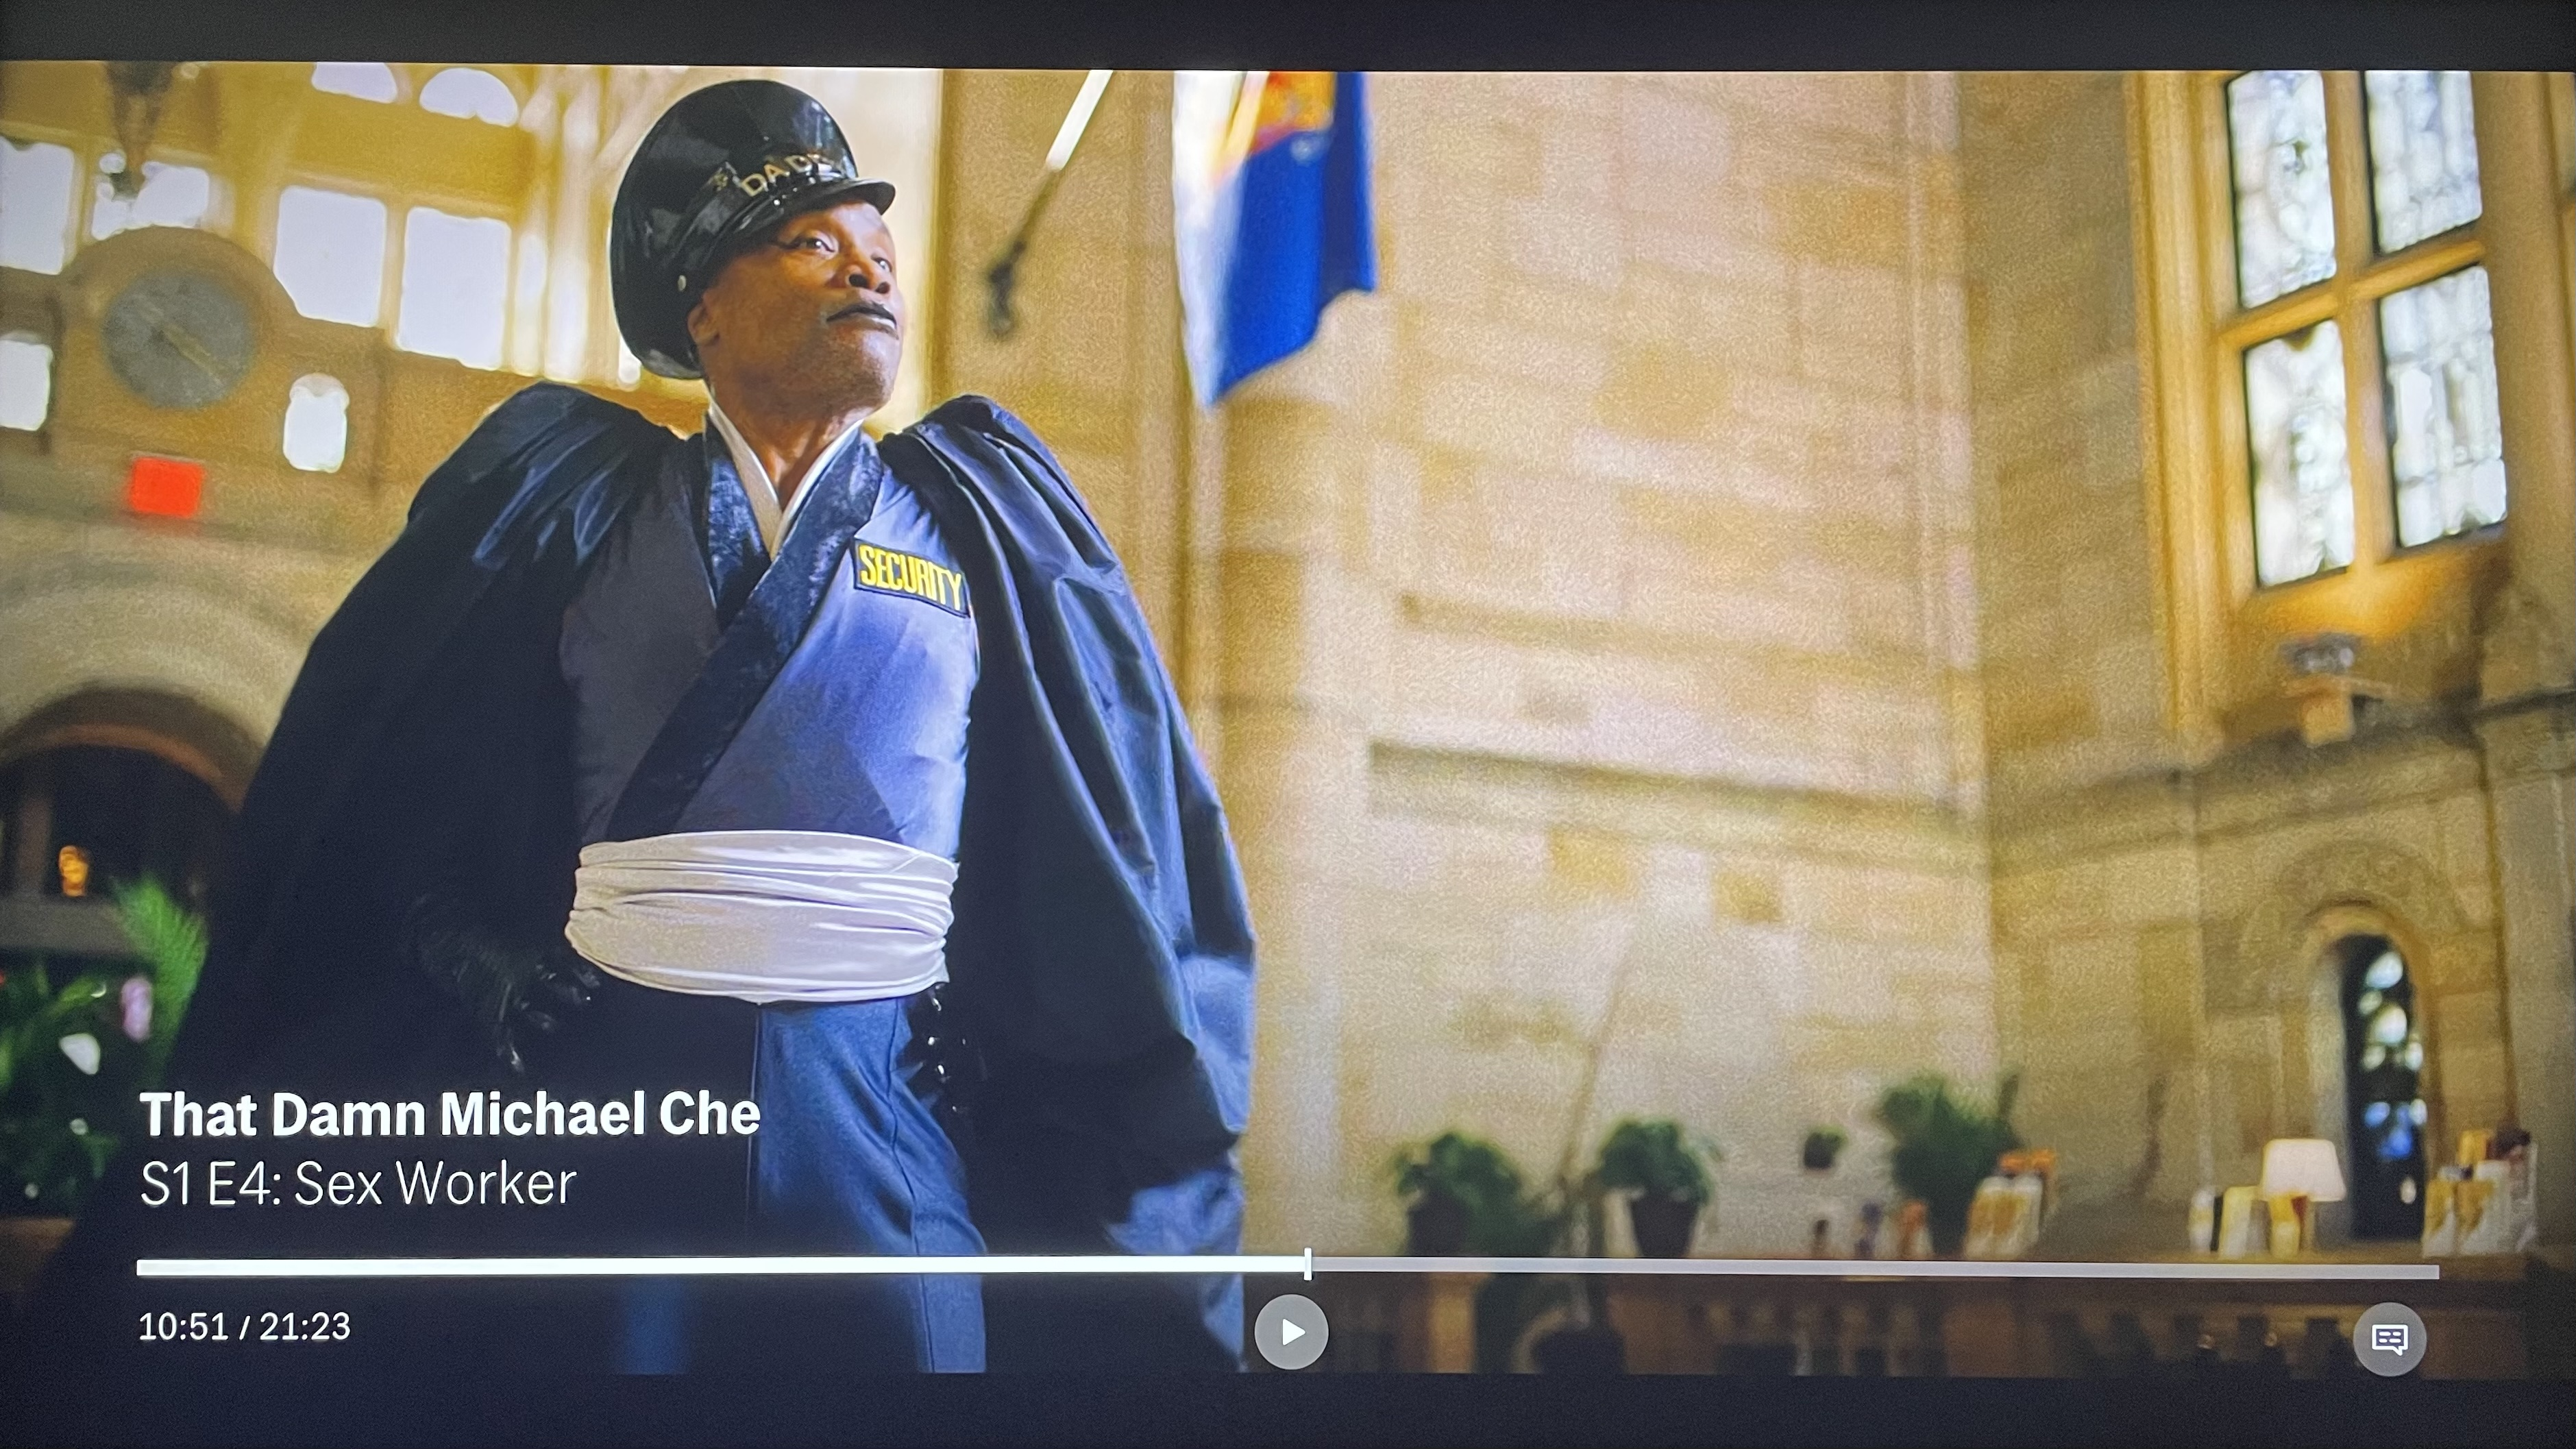 The new timeline UI & Billy Porter in an episode of 'That Damn Michael Che' on HBO Max